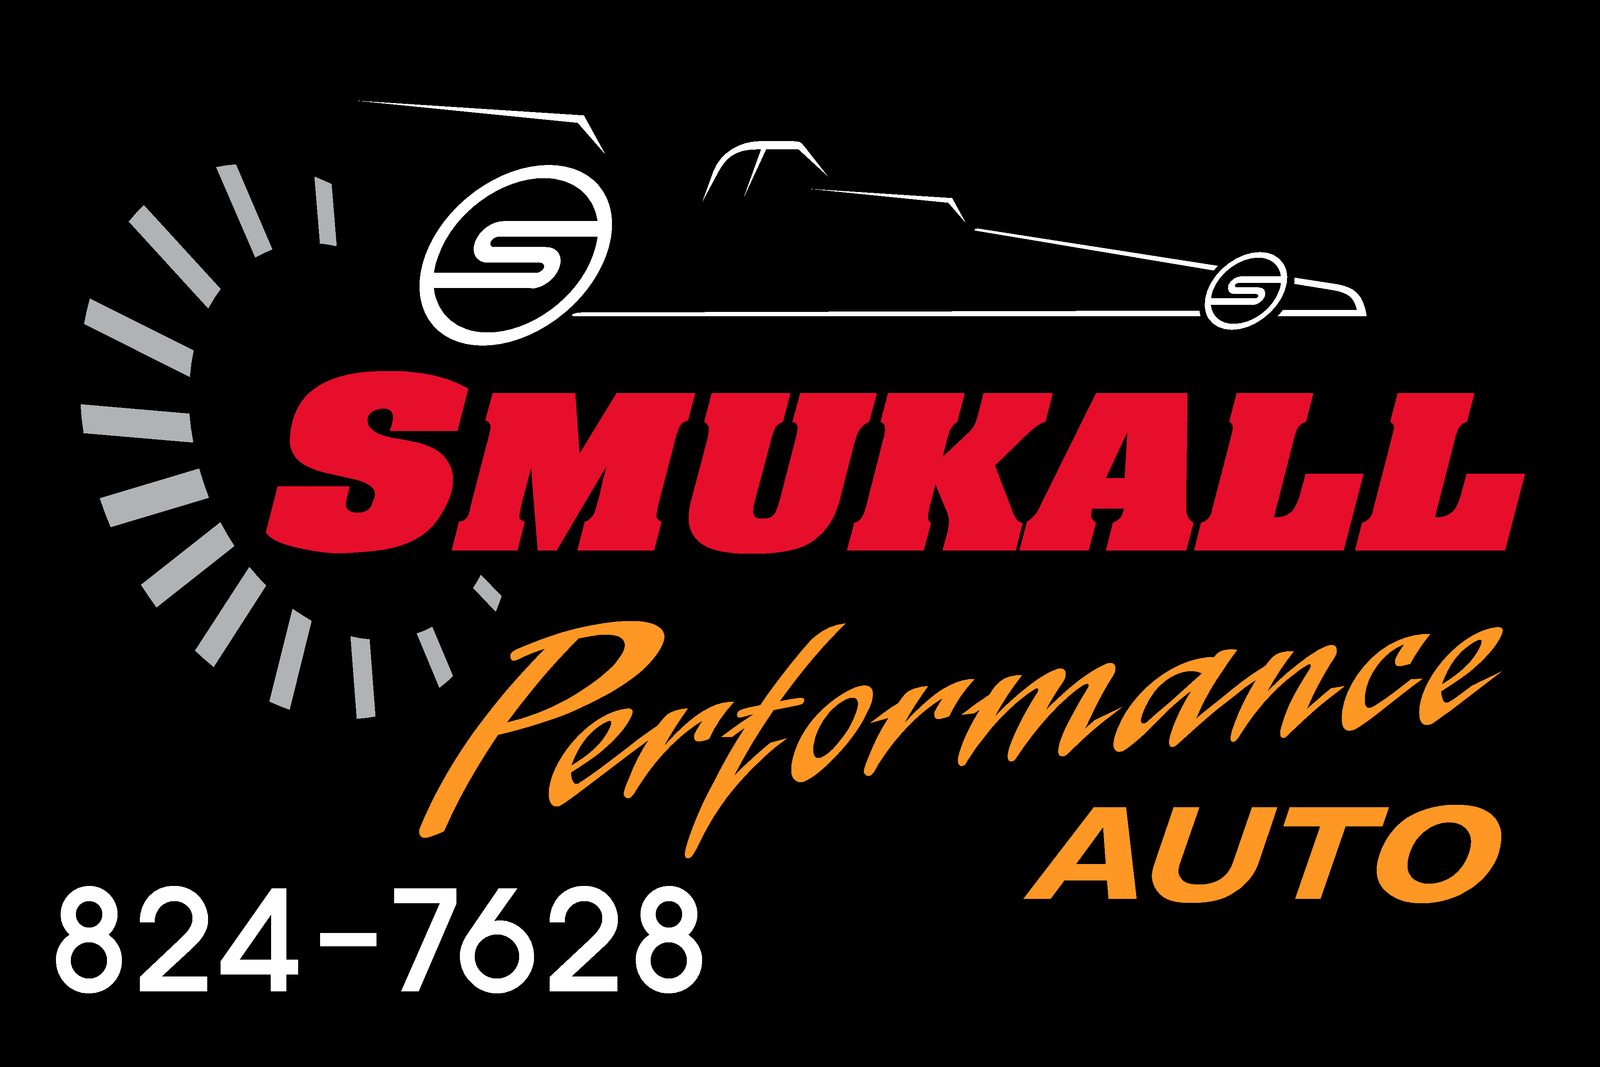 Honda Dealer Buffalo Ny >> Smukall Performance Auto - Buffalo, NY: Read Consumer reviews, Browse Used and New Cars for Sale